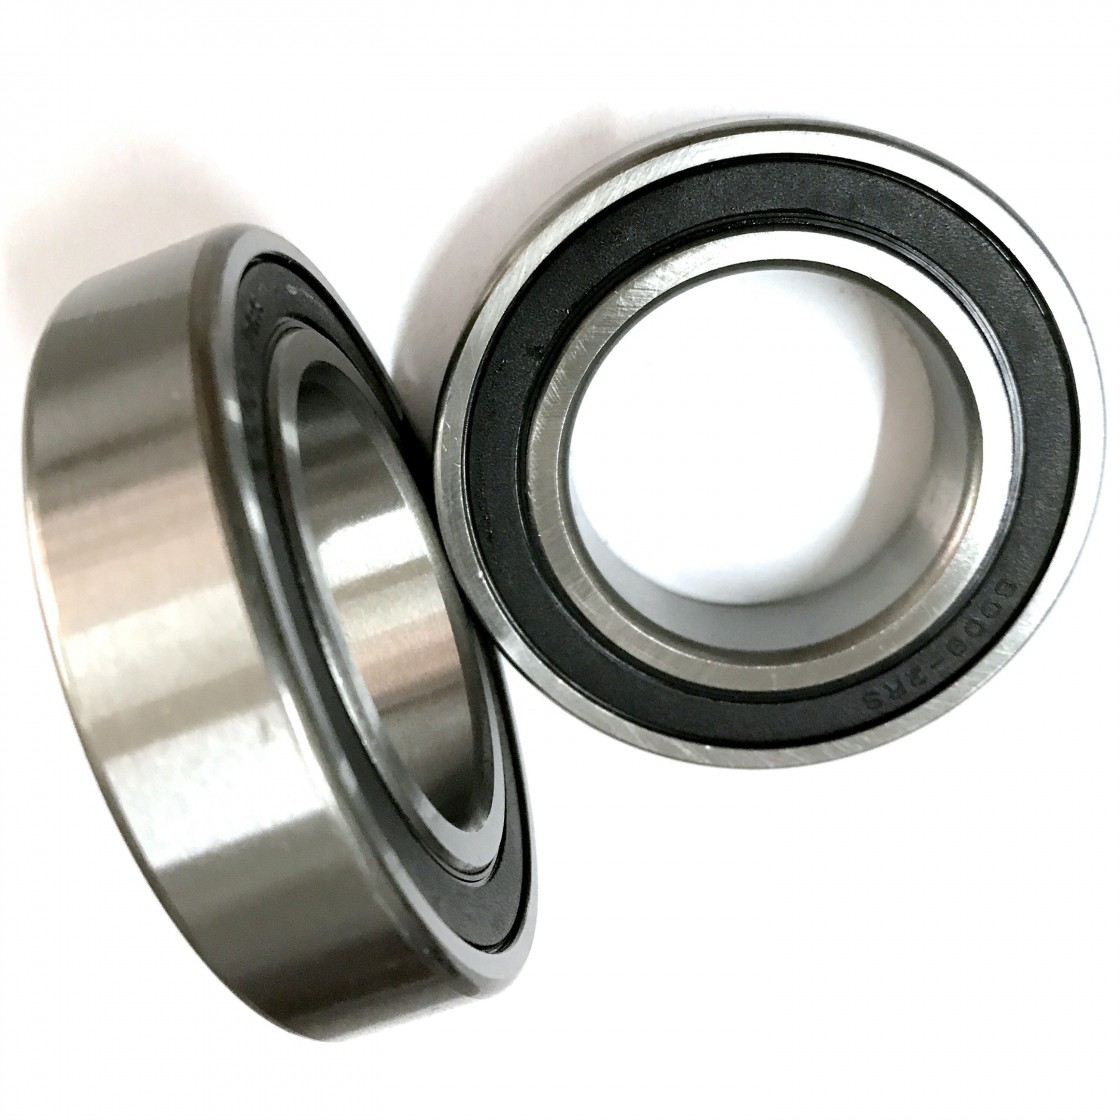 61902 NTN NSK Koyo Sweden Germany Ball Bearing 6902 2RS 6902zz